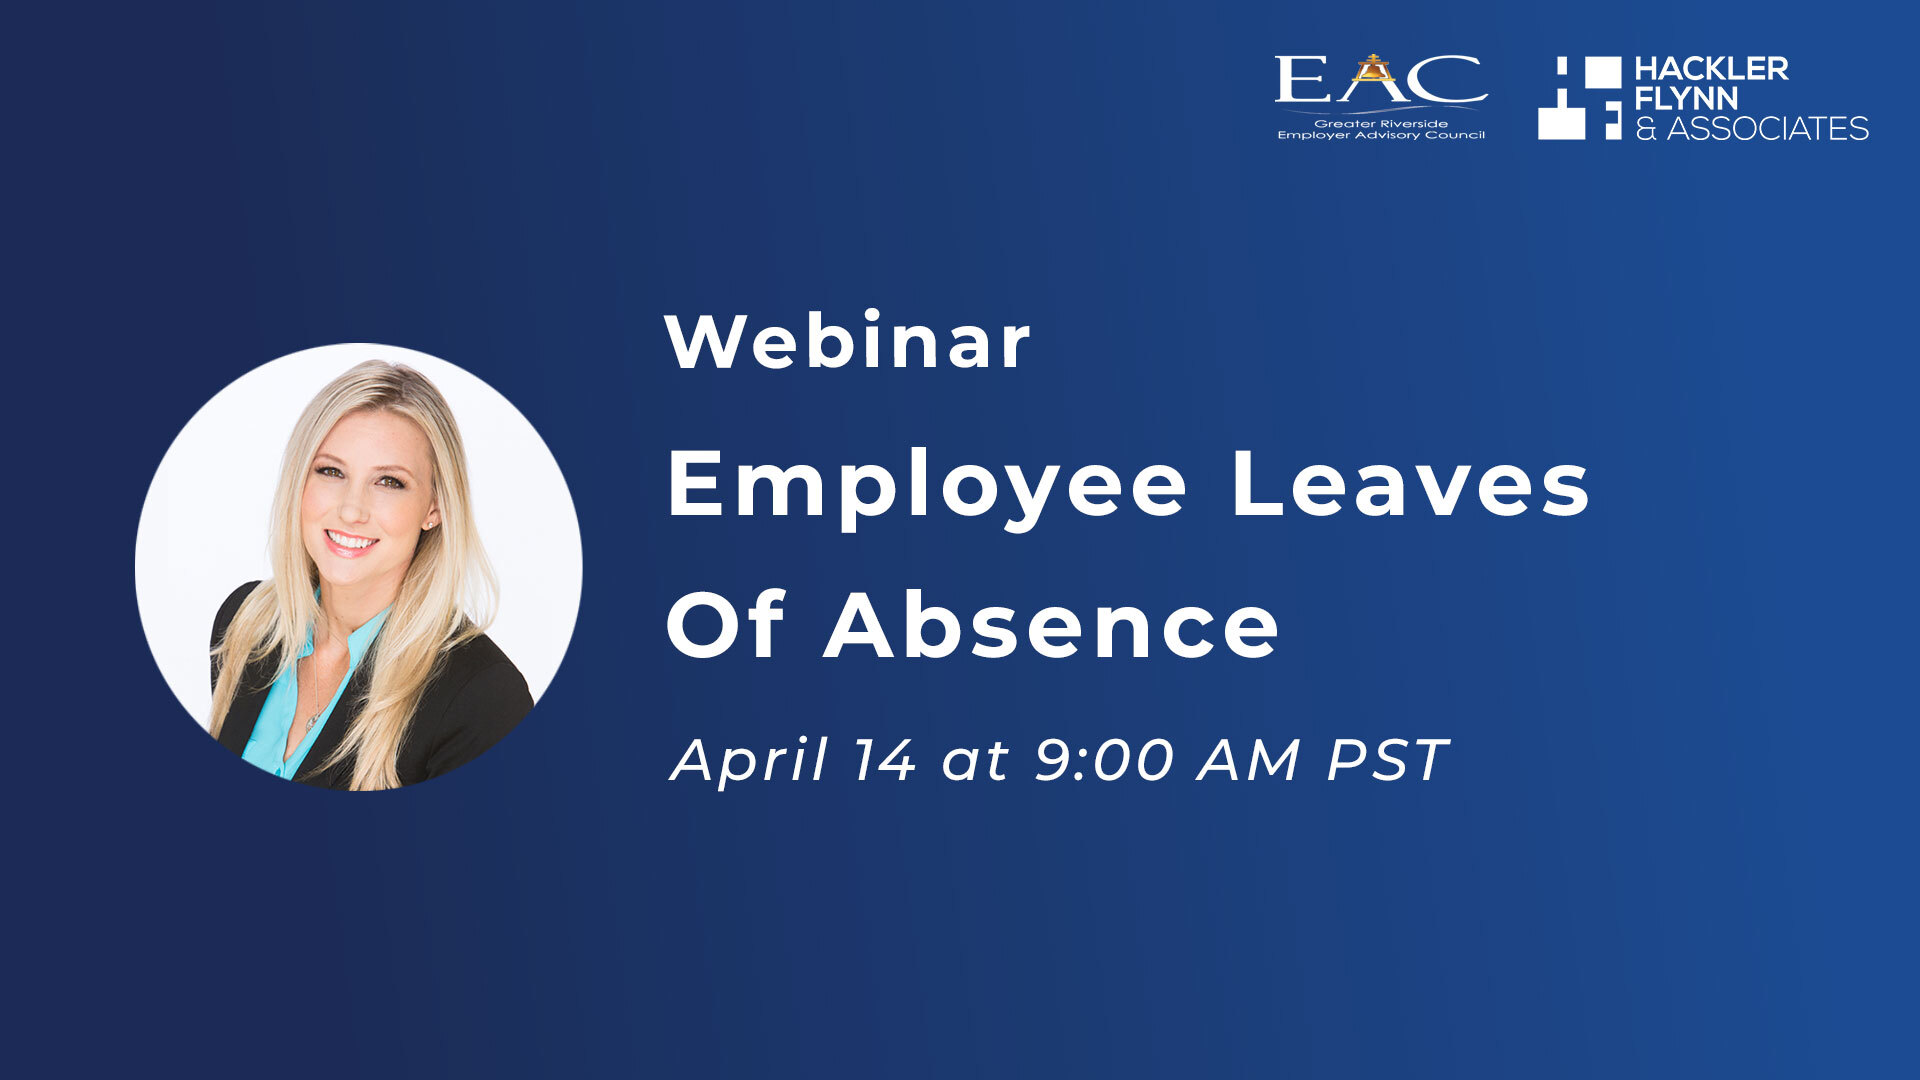 Employee Leave Laws Webinar